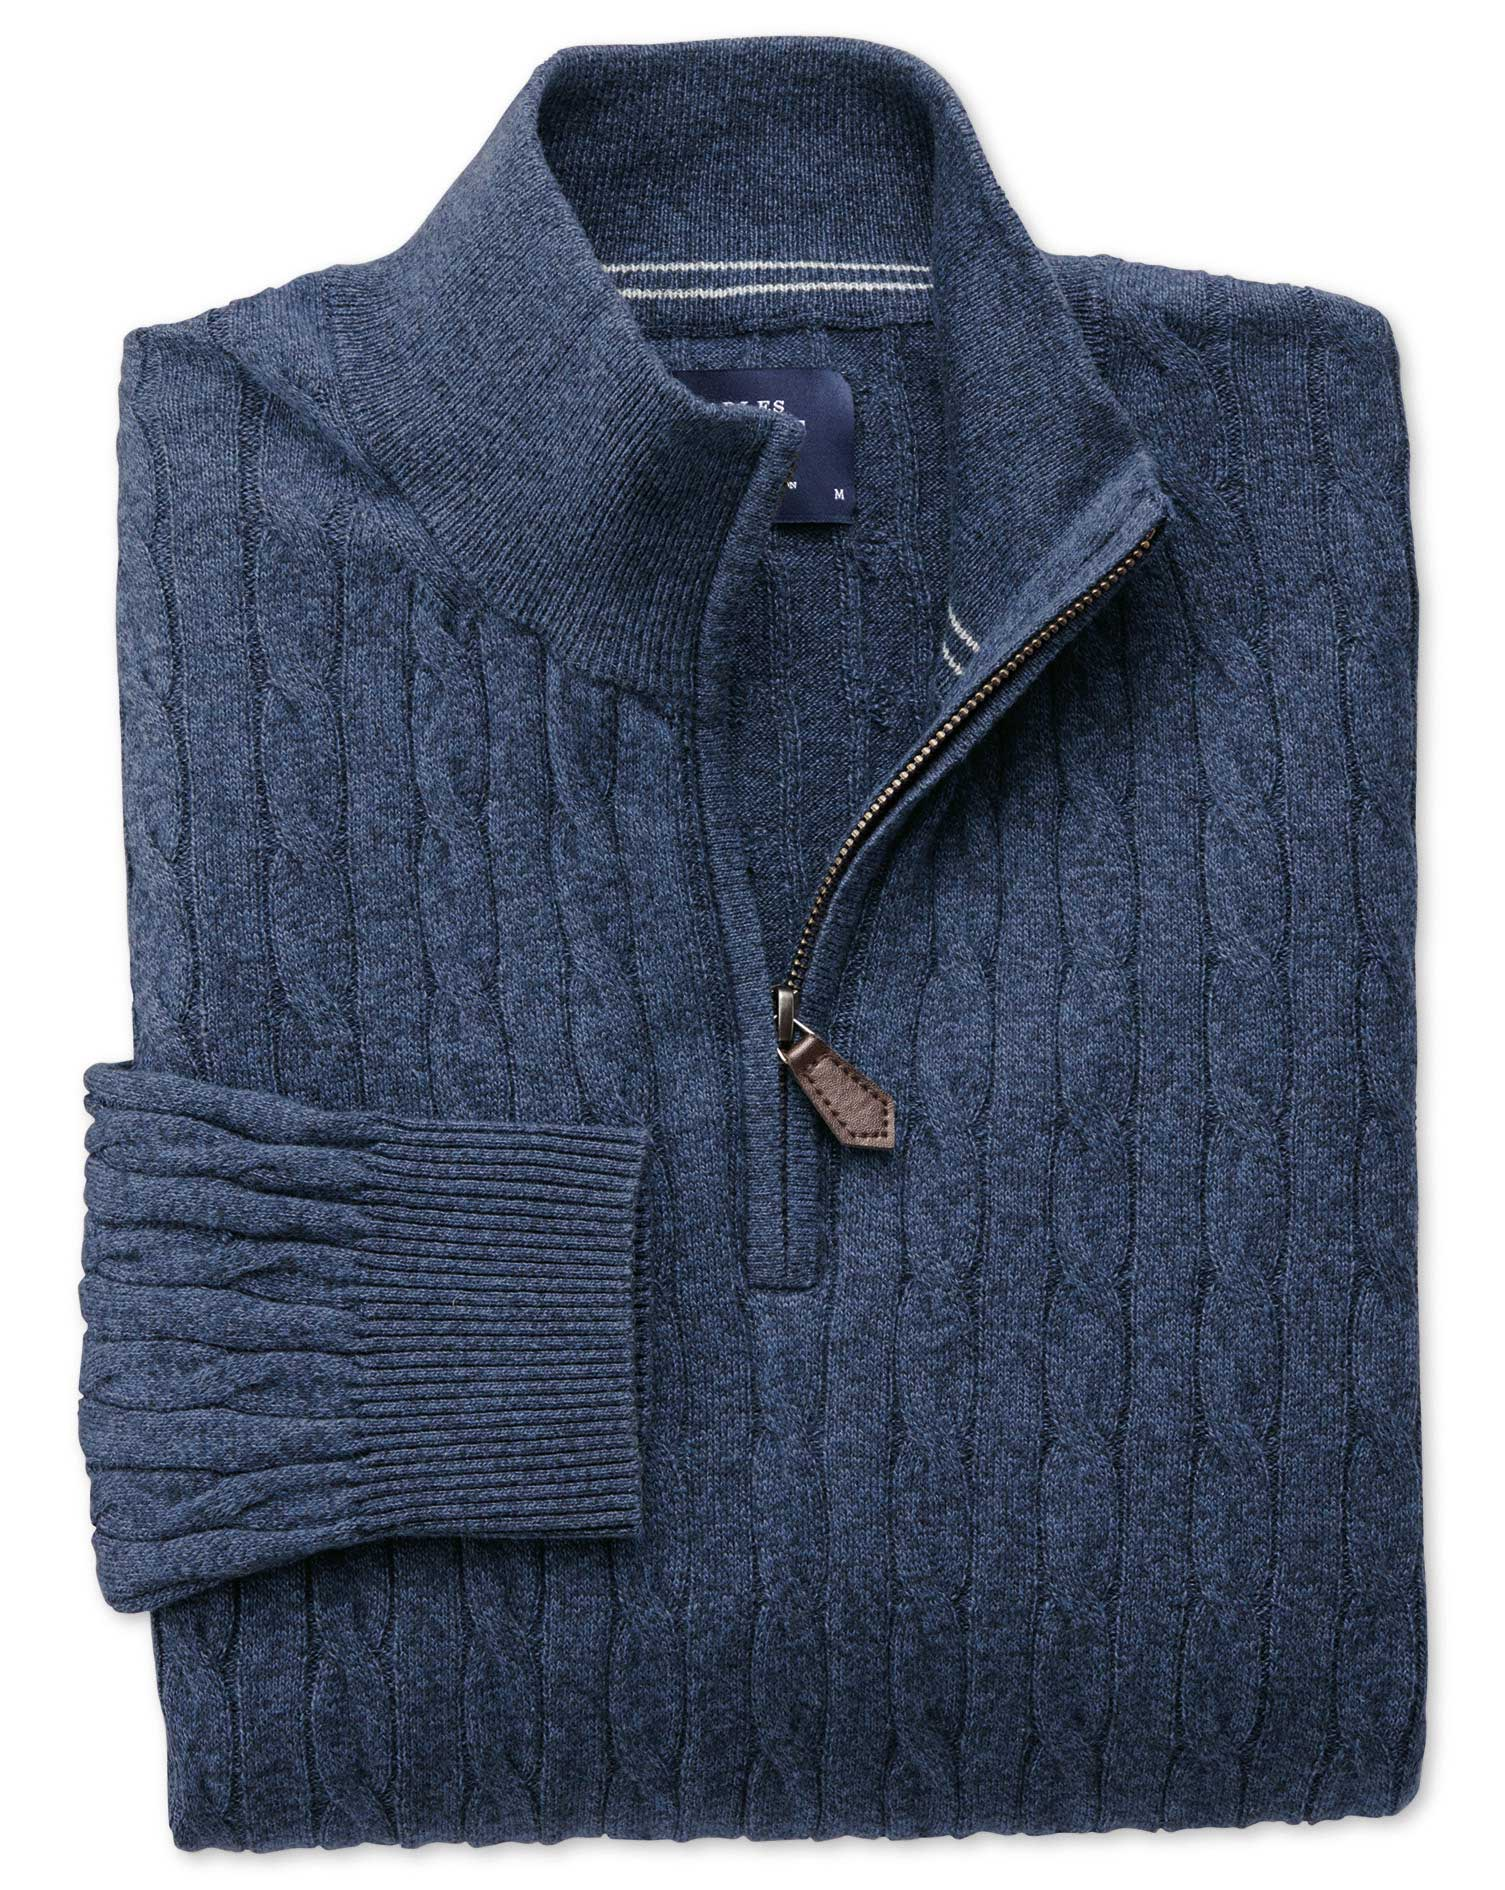 Indigo Cotton Cashmere Cable Zip Neck Jumper Size Large by Charles Tyrwhitt